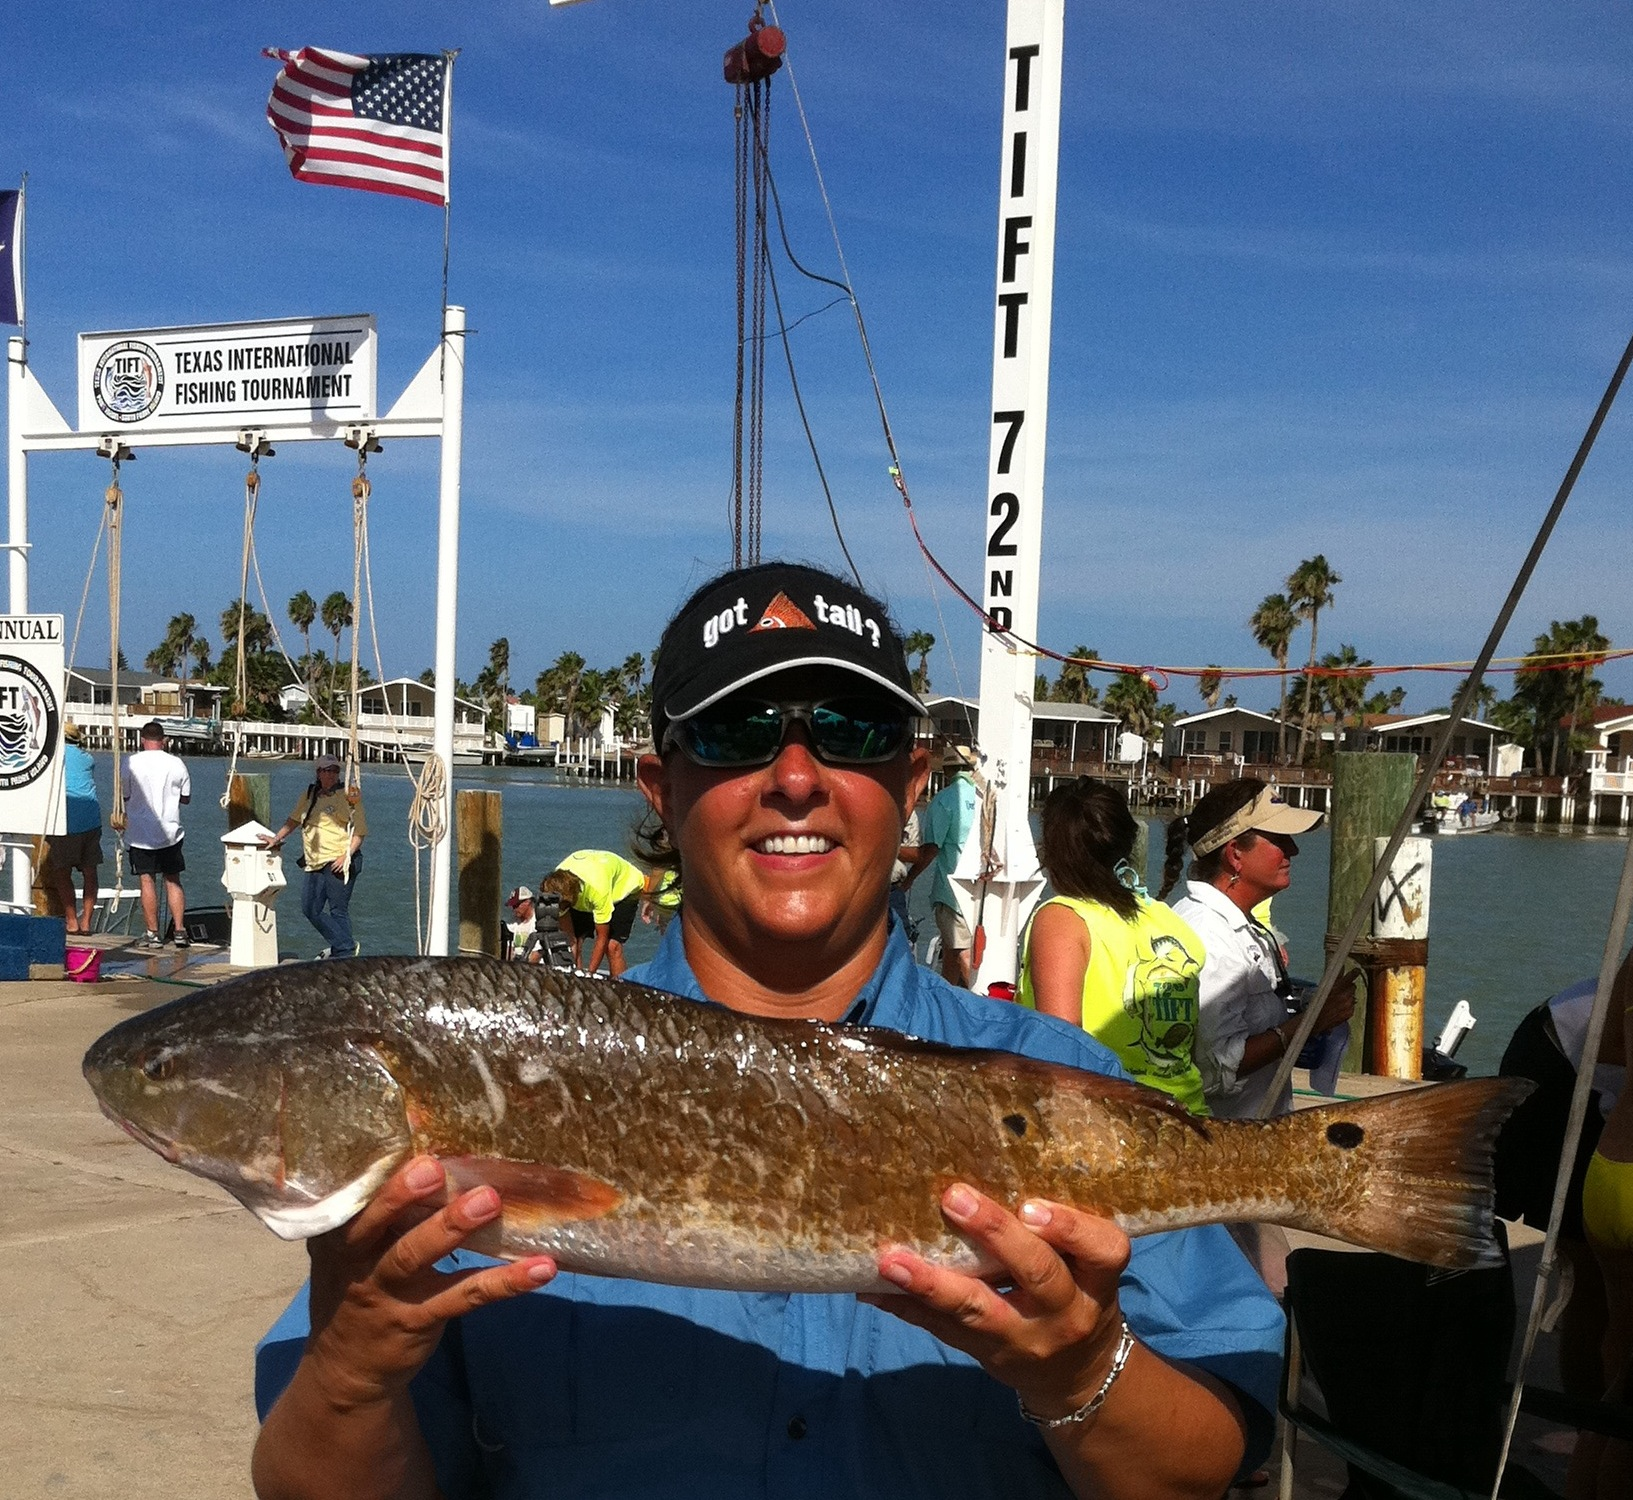 South padre and port isabel host tift july 31 to aug 4 for South texas fishing